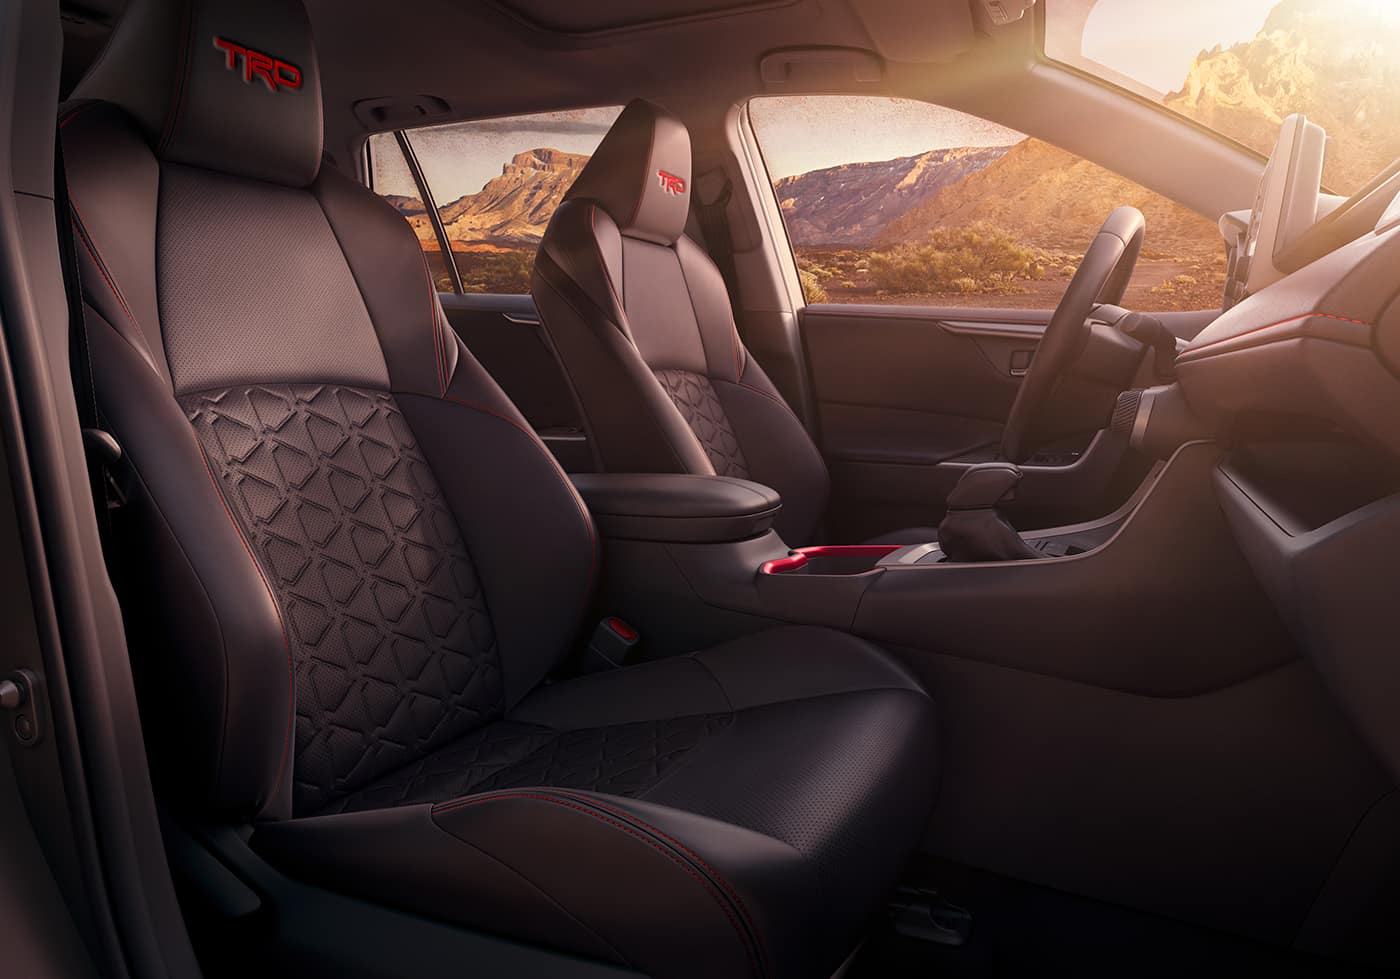 Performance features of the 2020 Toyota RAV4 at Boch Toyota | The seatings of the 2020 RAV4